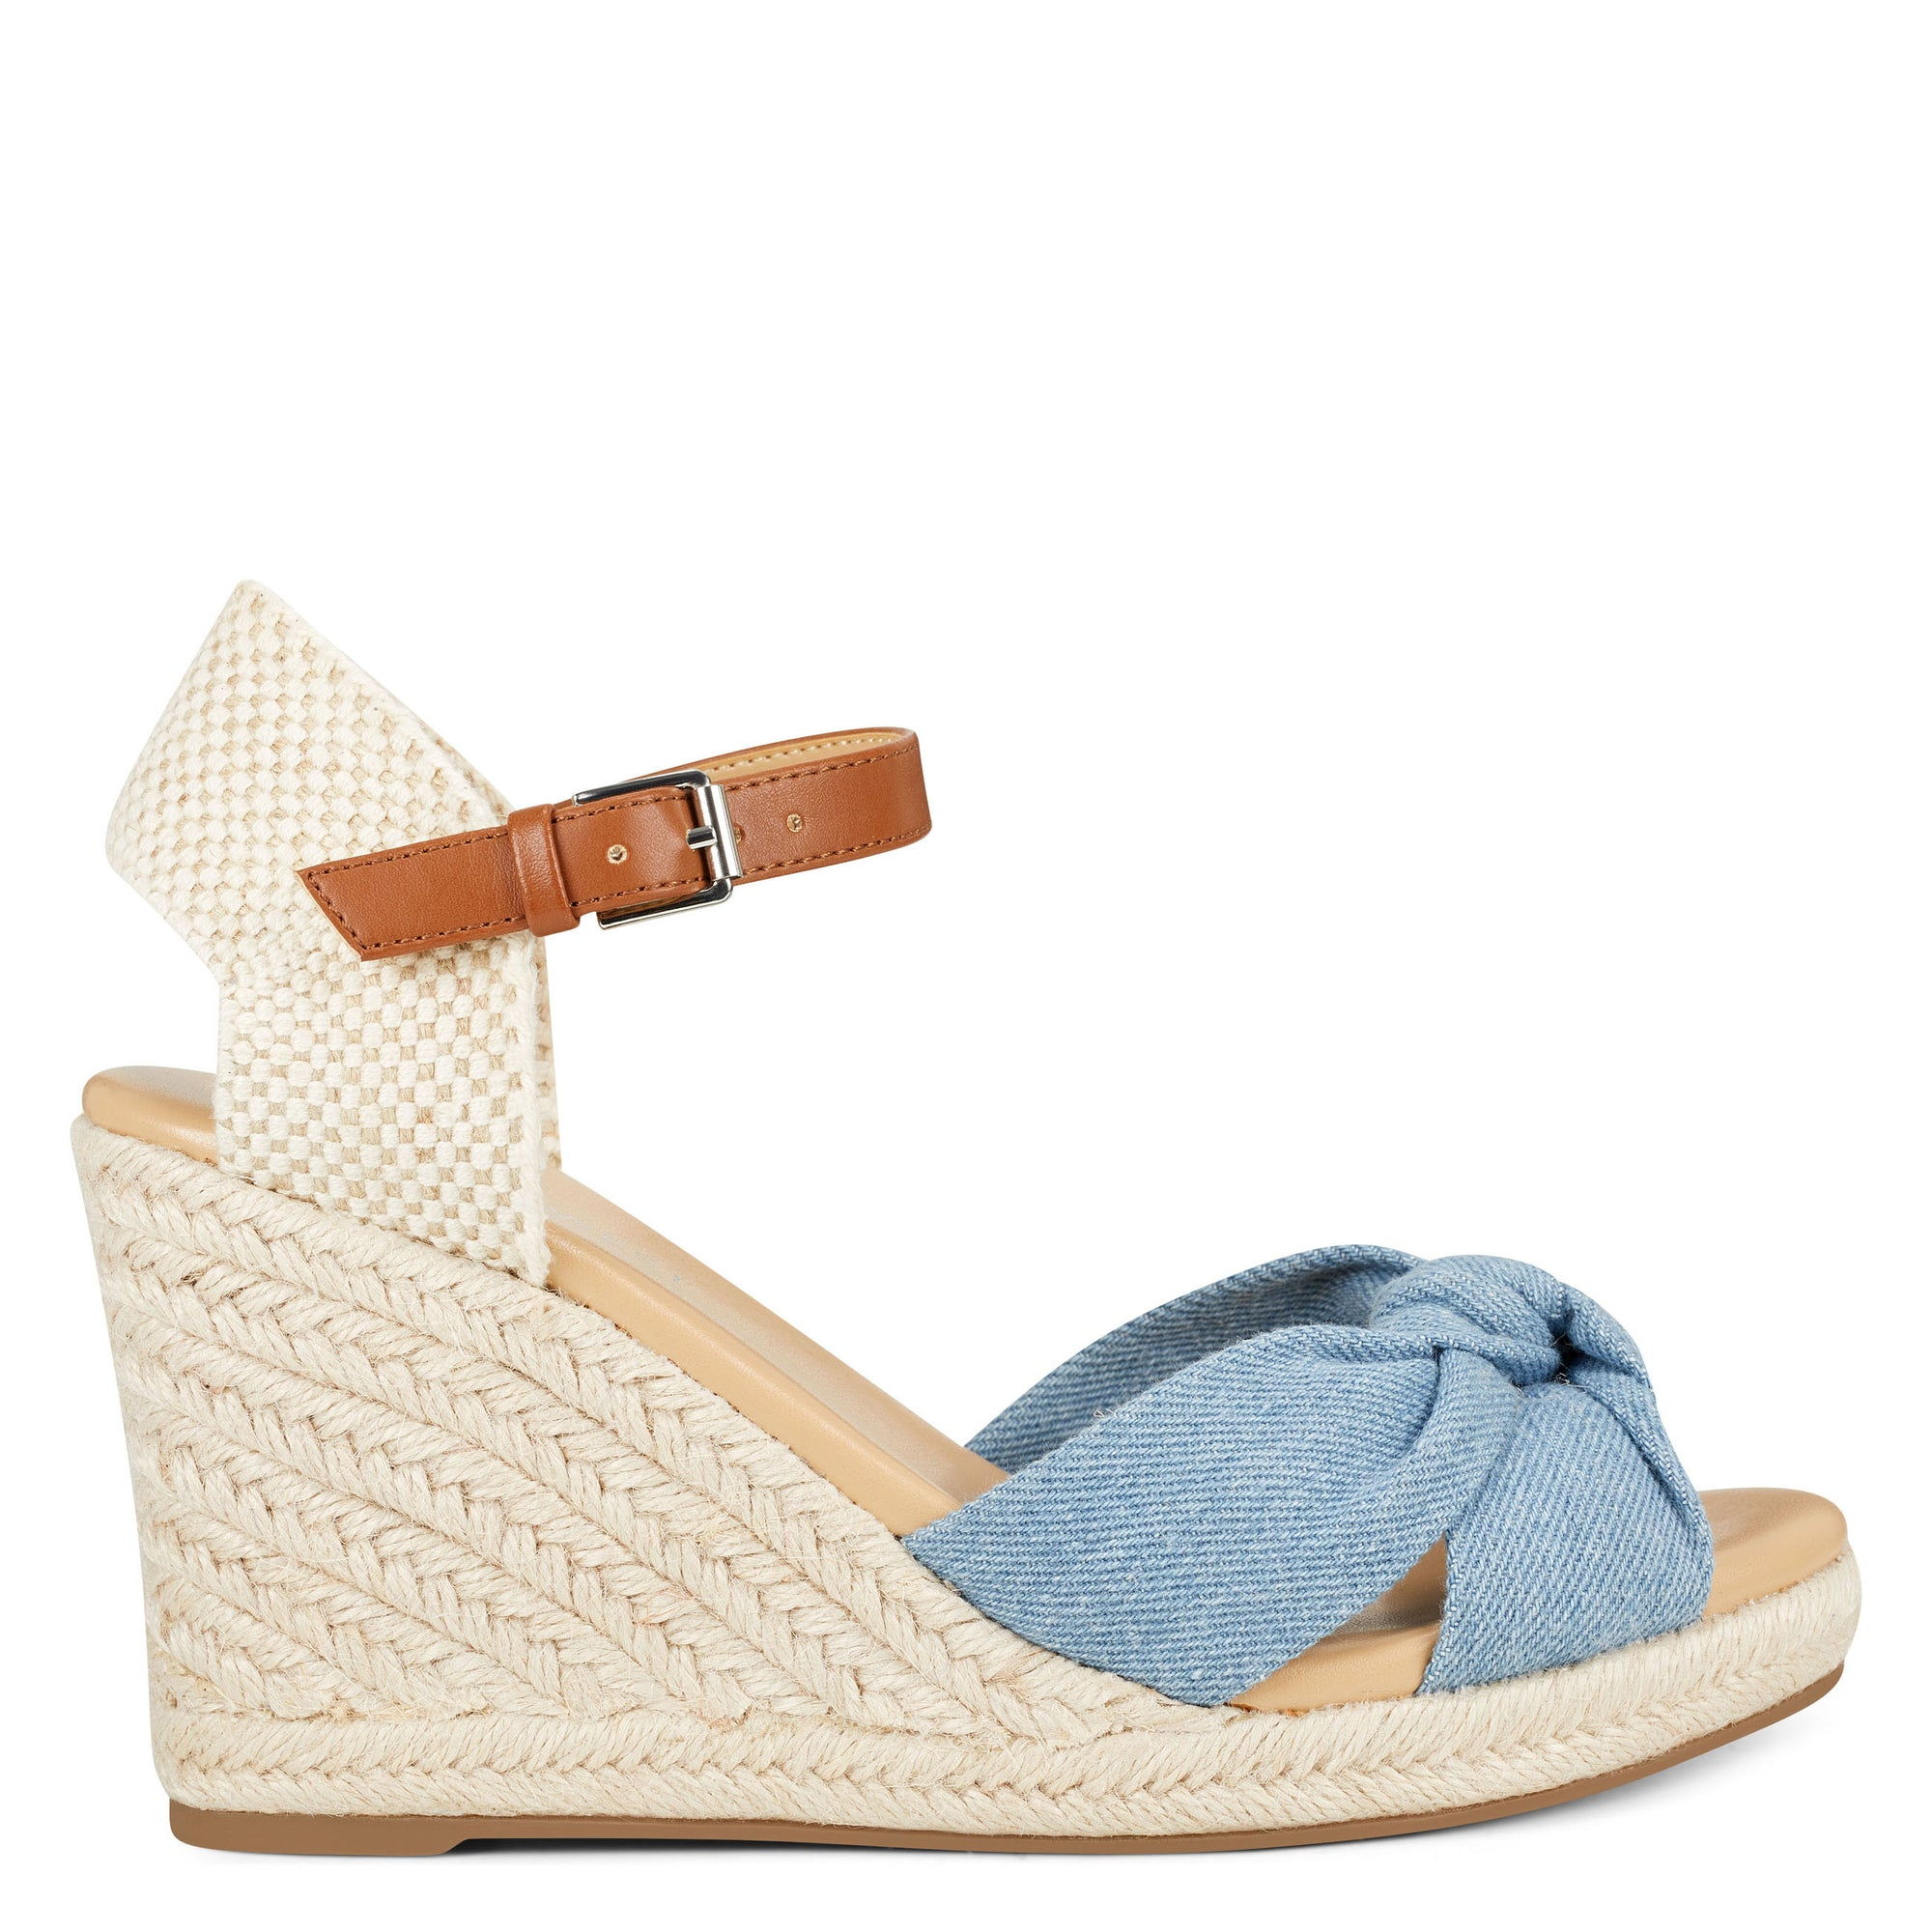 jolly-espadrille-wedge-sandals-in-denim-natural